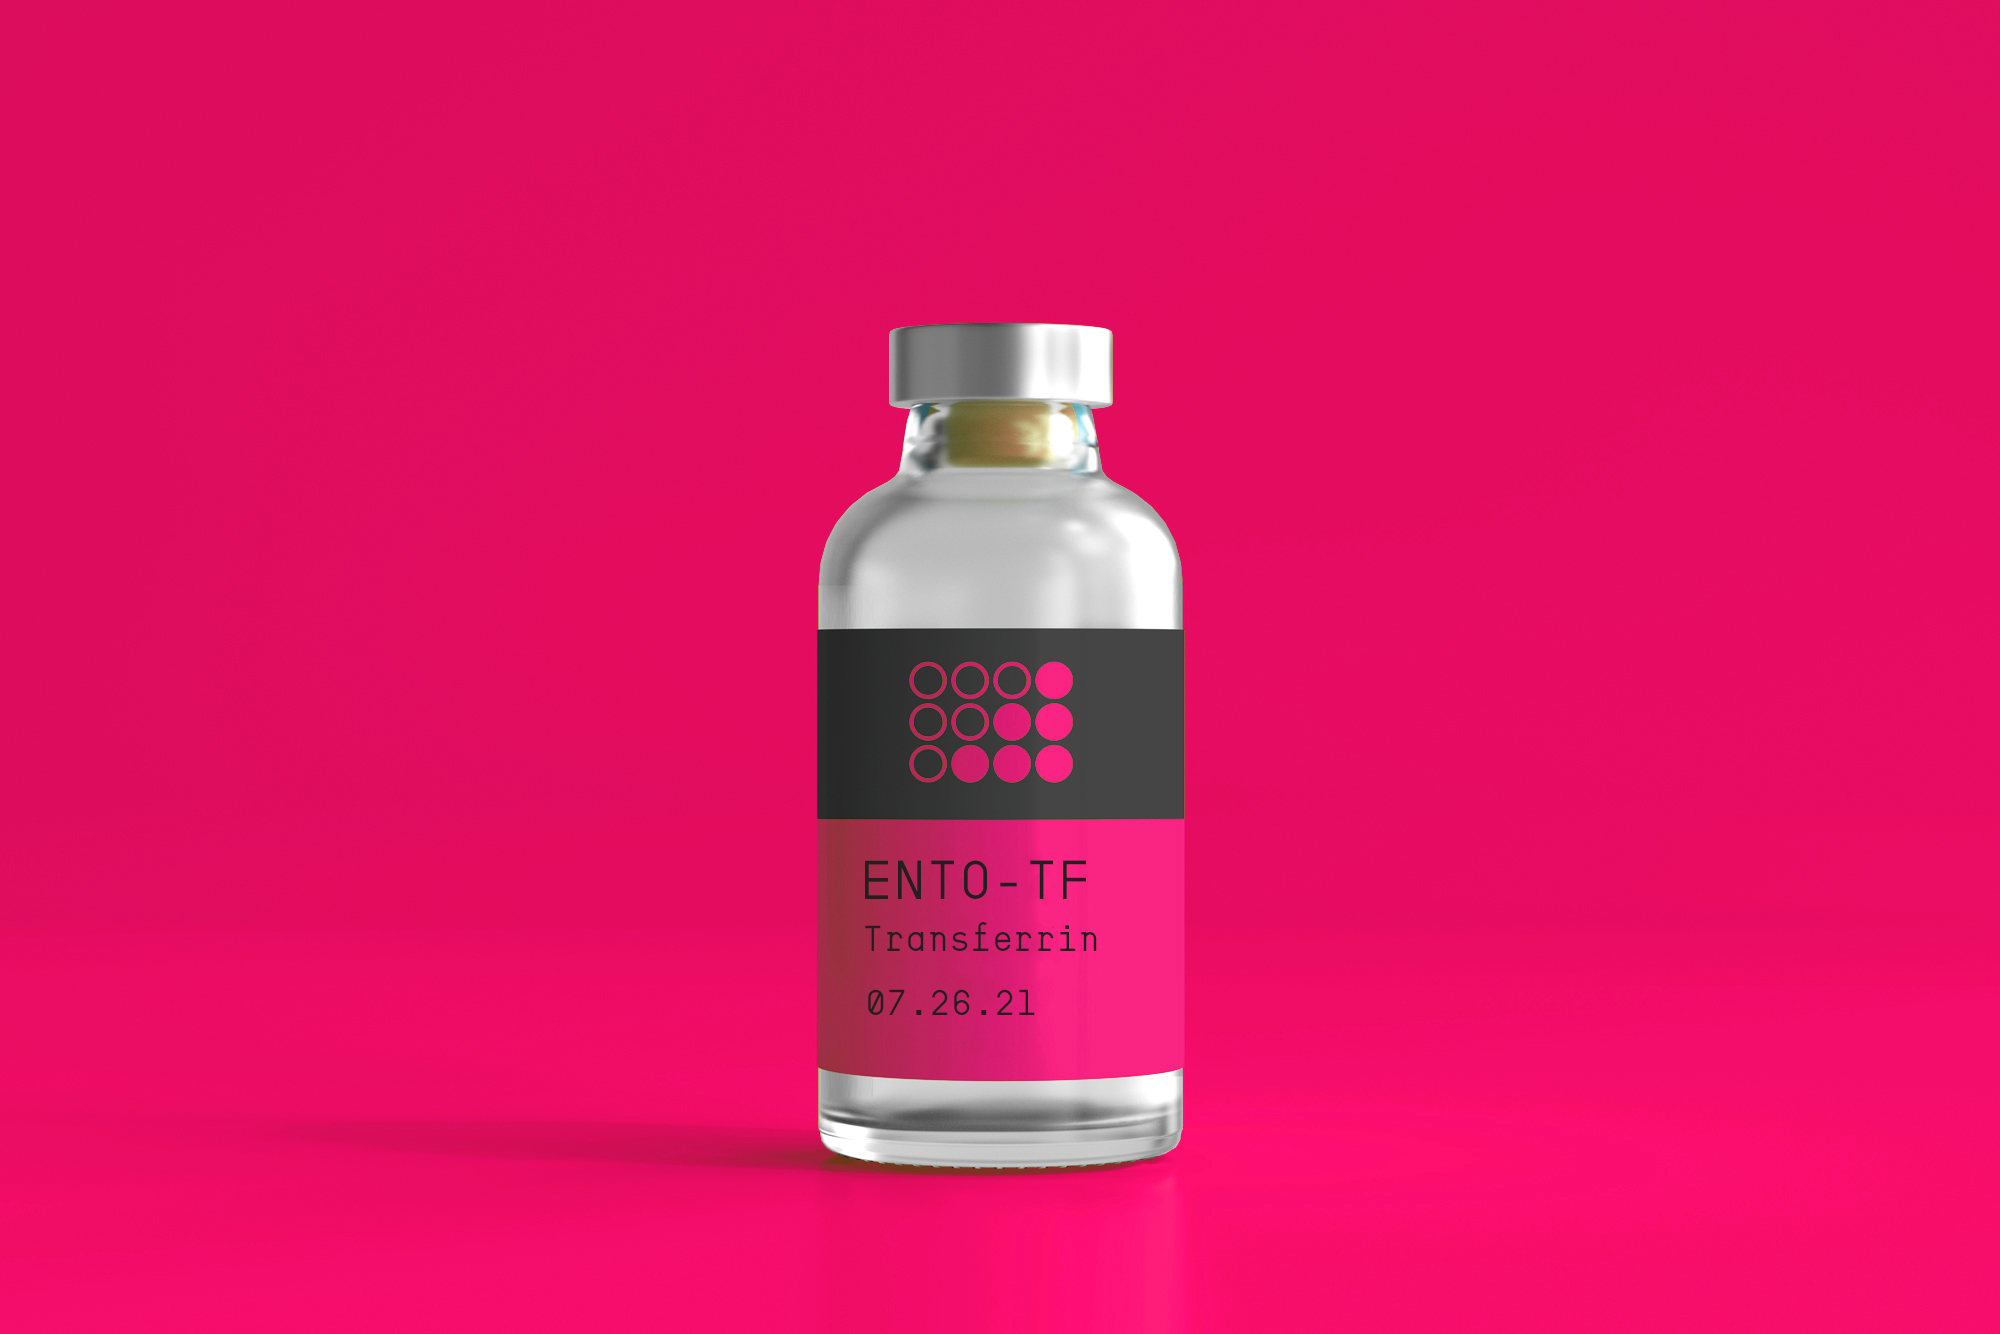 Transferrin Enriched Growth Media Supplement. 1000C concentrate recombinant bovine Transferrin enriched growth media supplement produced with the EntoEngine™ platform. Future Fields products are currently available for Research Use Only.